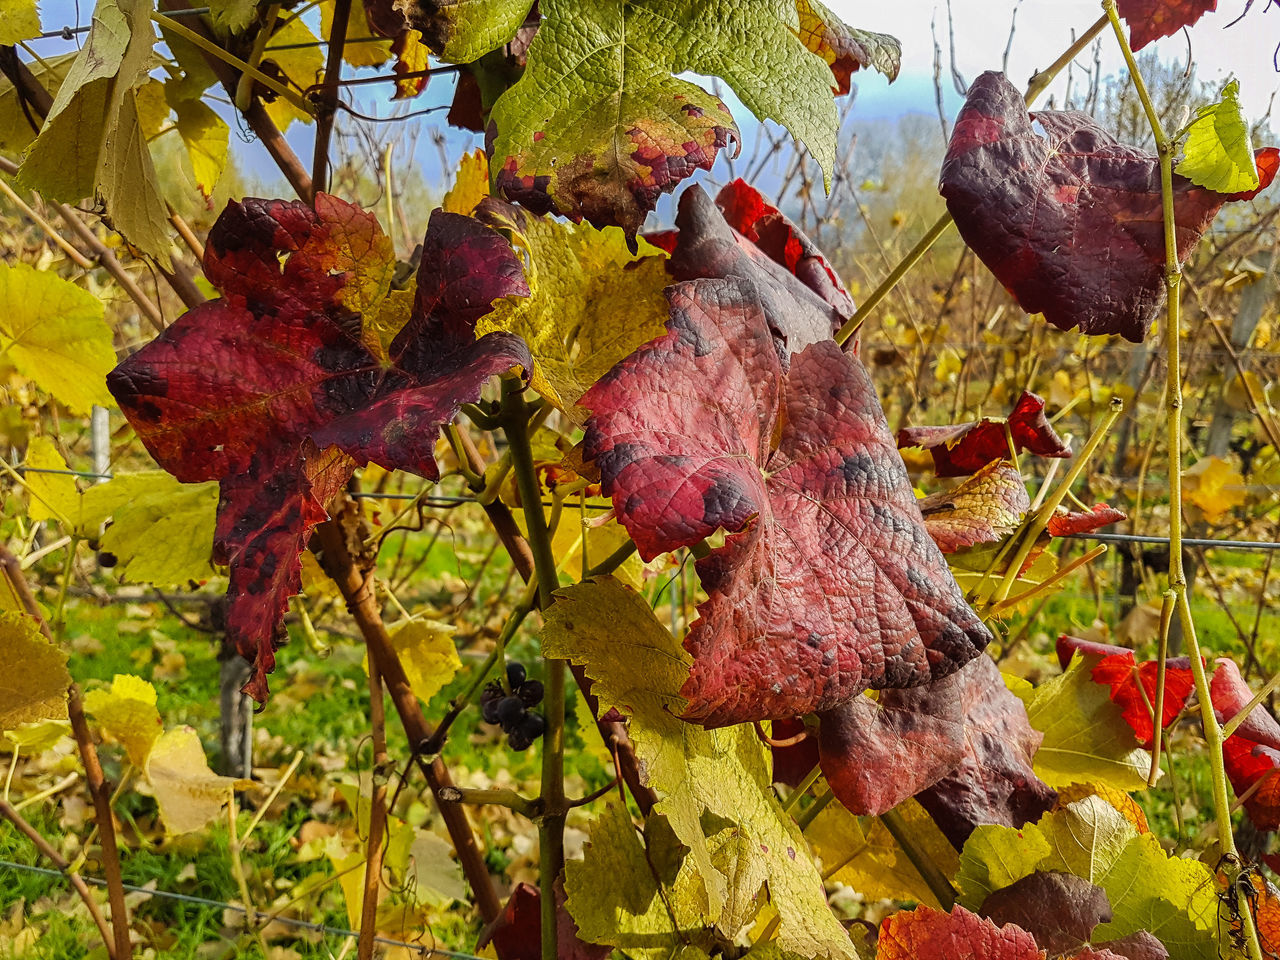 Weinstock 1 Miltenberg Autumn Autumn Collection Autumn Colors Autumn Colours Autumn Leaves Canoma Photography Miltenberg S7 Edge S7 Edge Photography S7edge S7Edgecamera S7edgephoto S7edgephotography Vineyard Vineyard Cultivation Vineyards  Weinstock